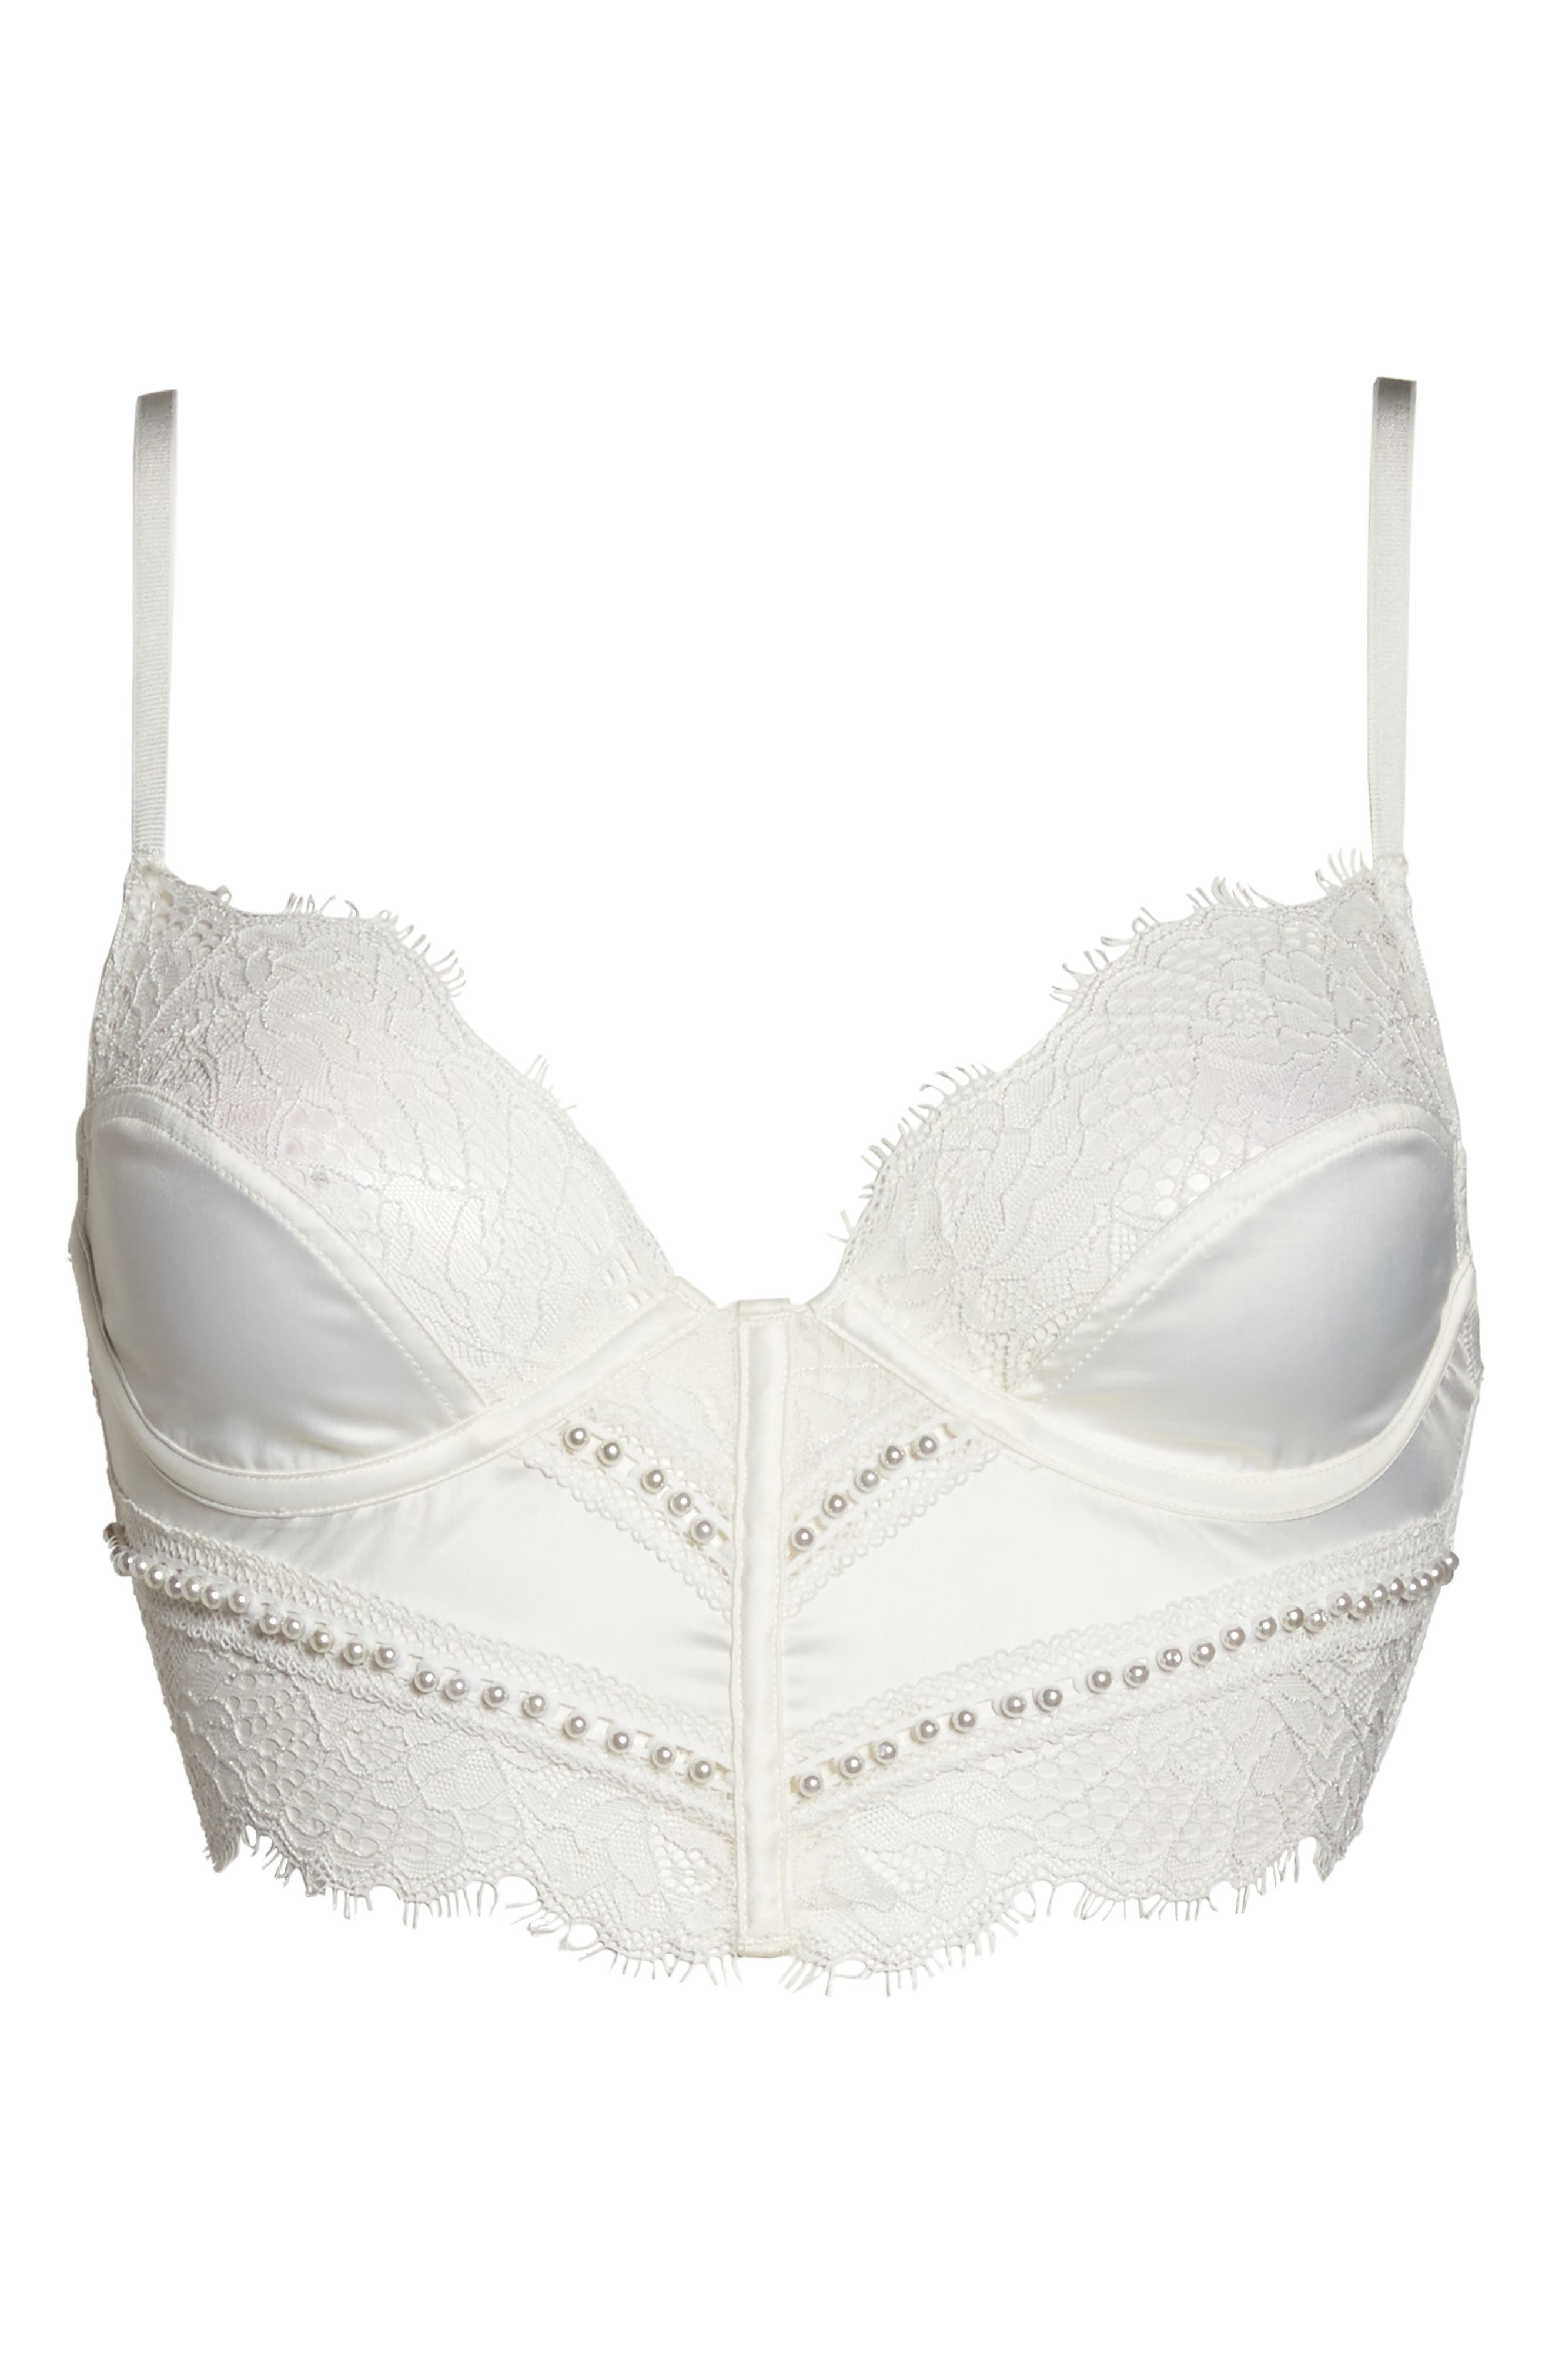 Thistle & Spire Sterling Embellished Underwire Bustier Lace Bra,                             Alternate thumbnail 6, color,